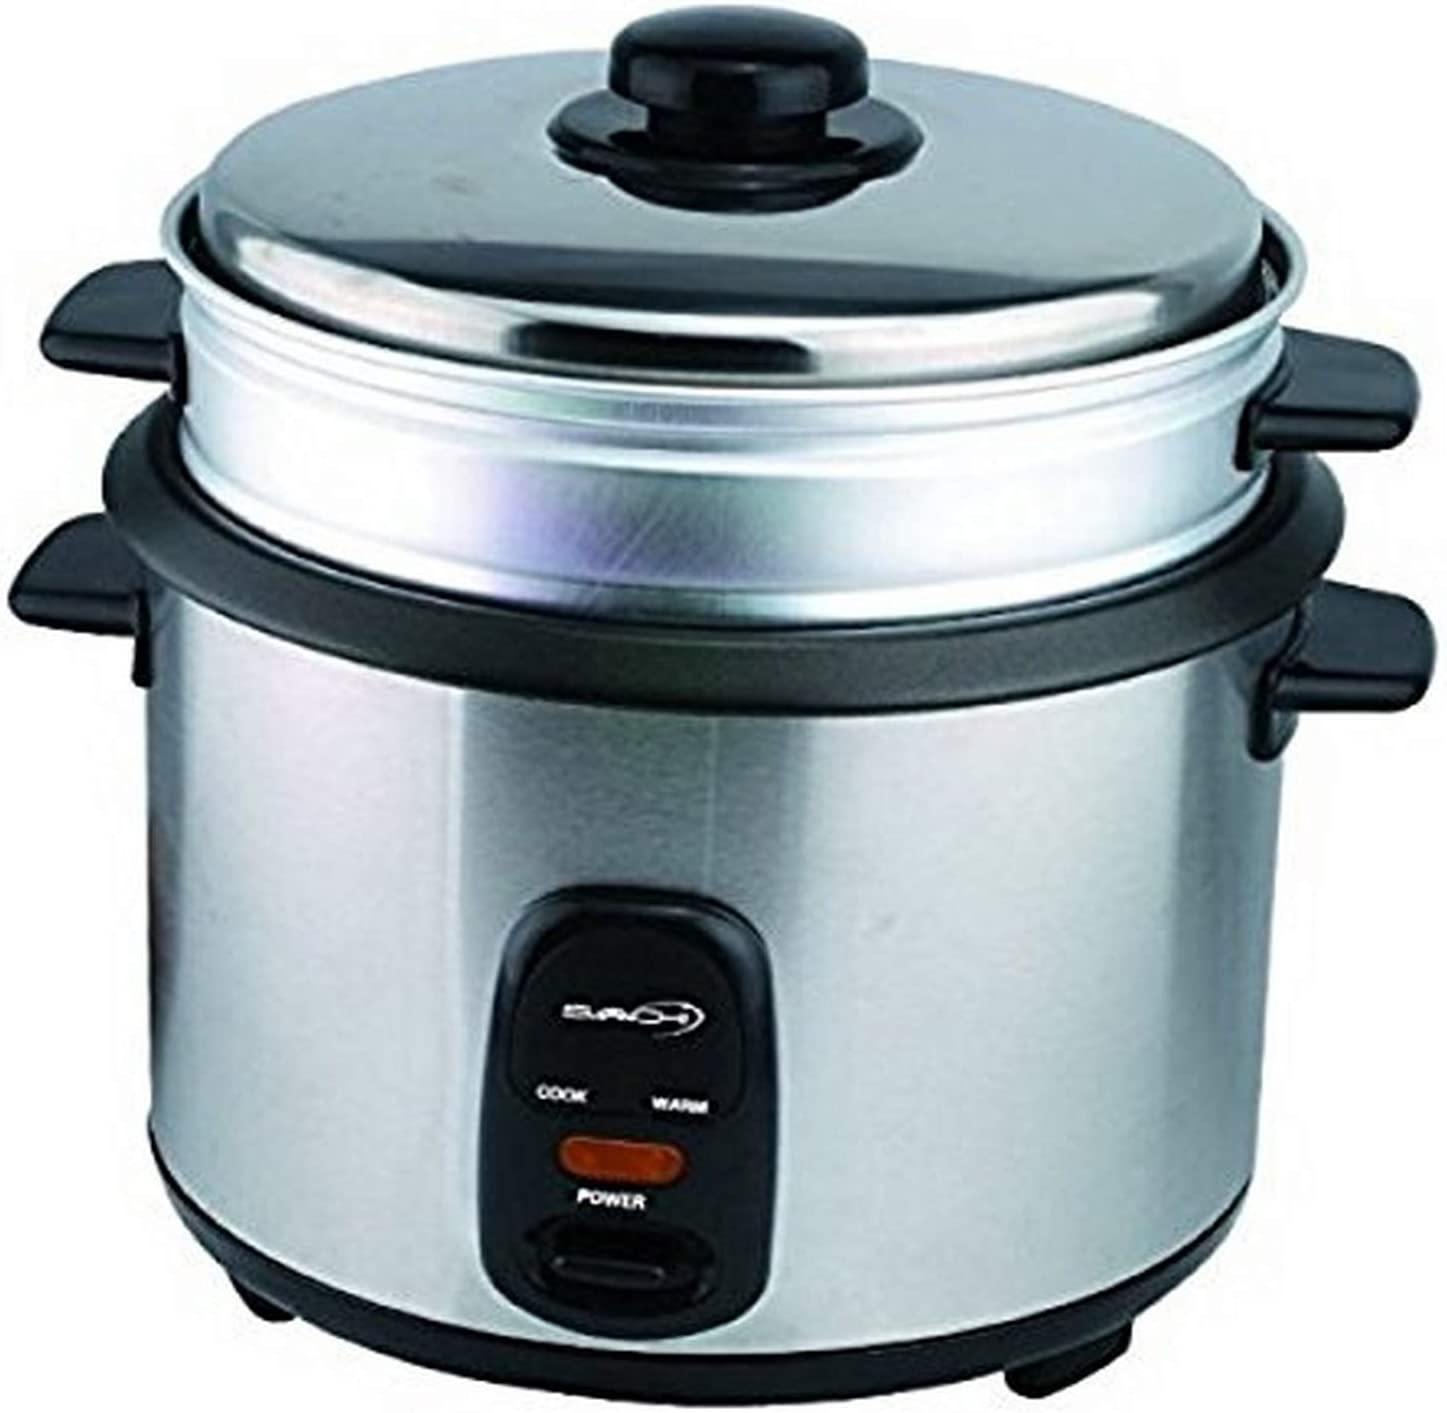 Saachi RC100 5 Cup Automatic Rice Cooker (Uncooked) with Vegetable Food Steamer and Keep Warm, Stainless Steel and Non-Stick Pot, Silver